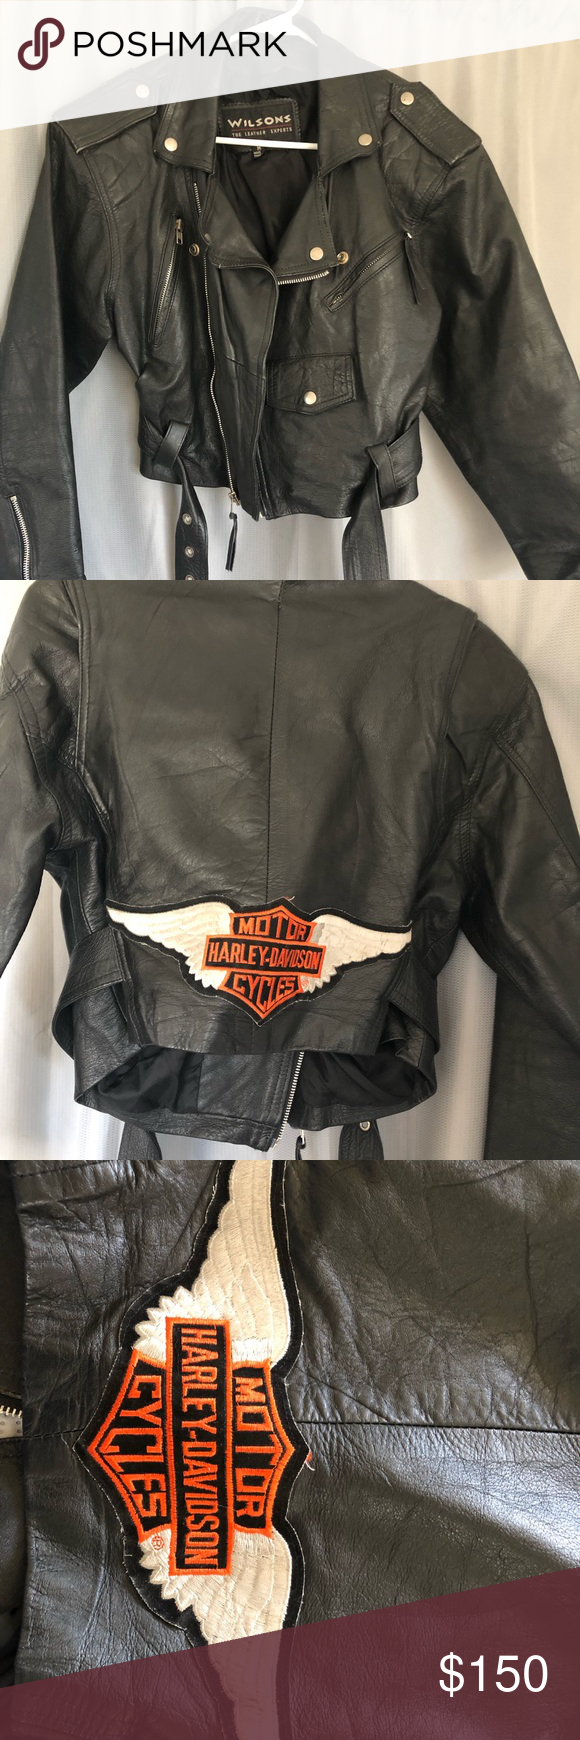 SALE MUST GO 🔥 Genuine Harley Davidson leather Harley